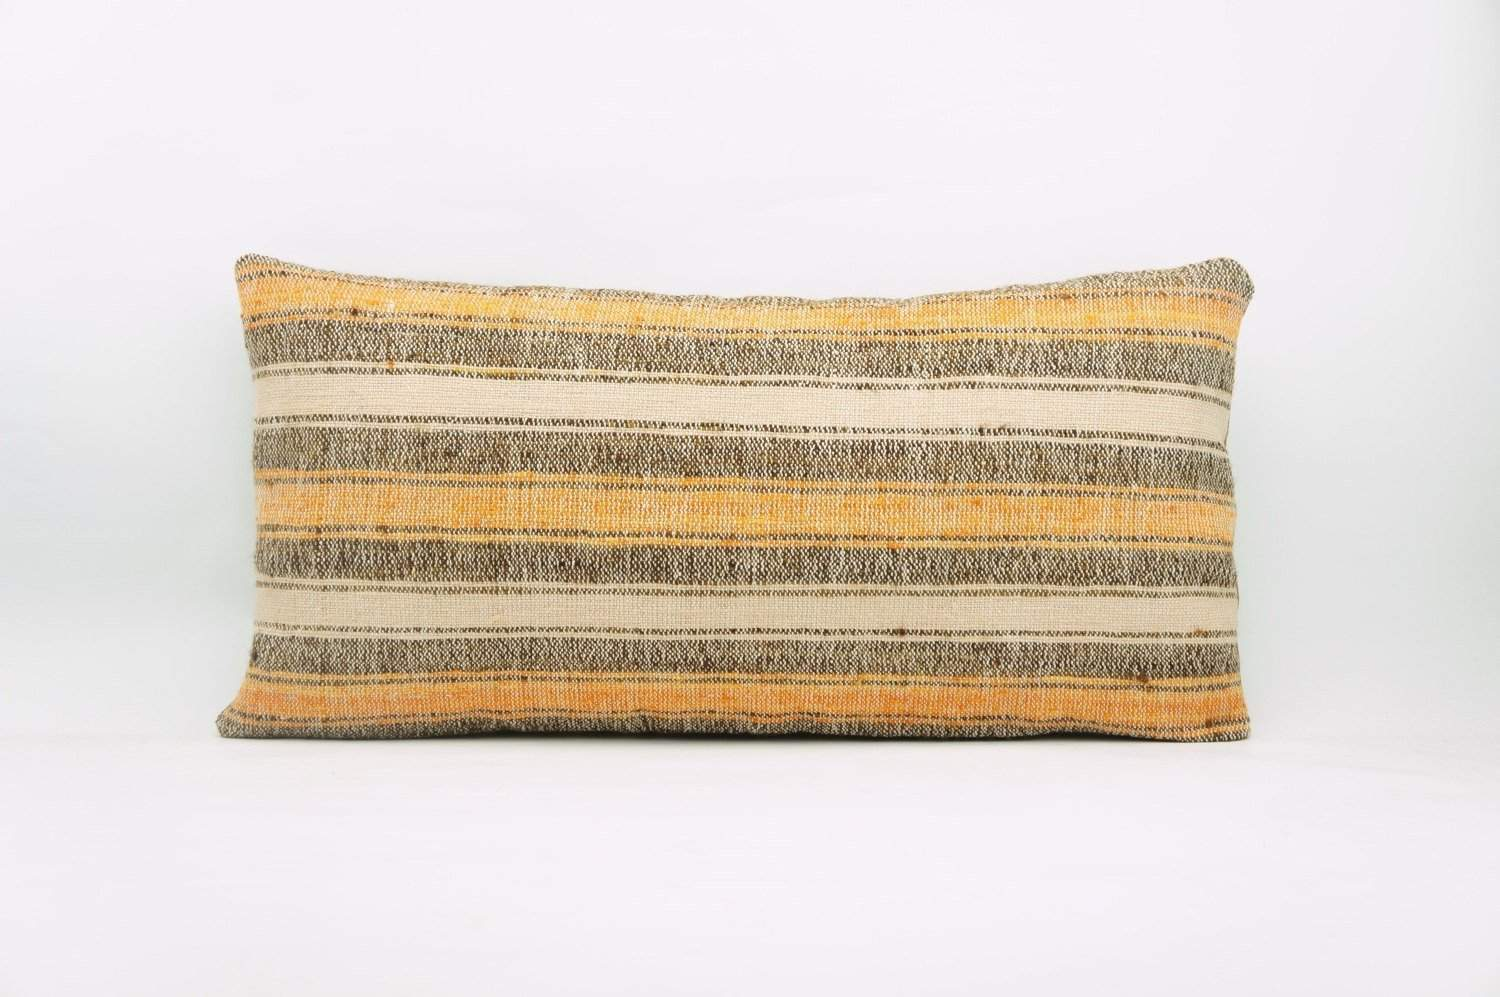 12x24 Vintage Hand Woven Kilim Pillow Lumbar Bohemian pillow case, Modern home decor  orange white brown  striped 958 - kilimpillowstore  - 1